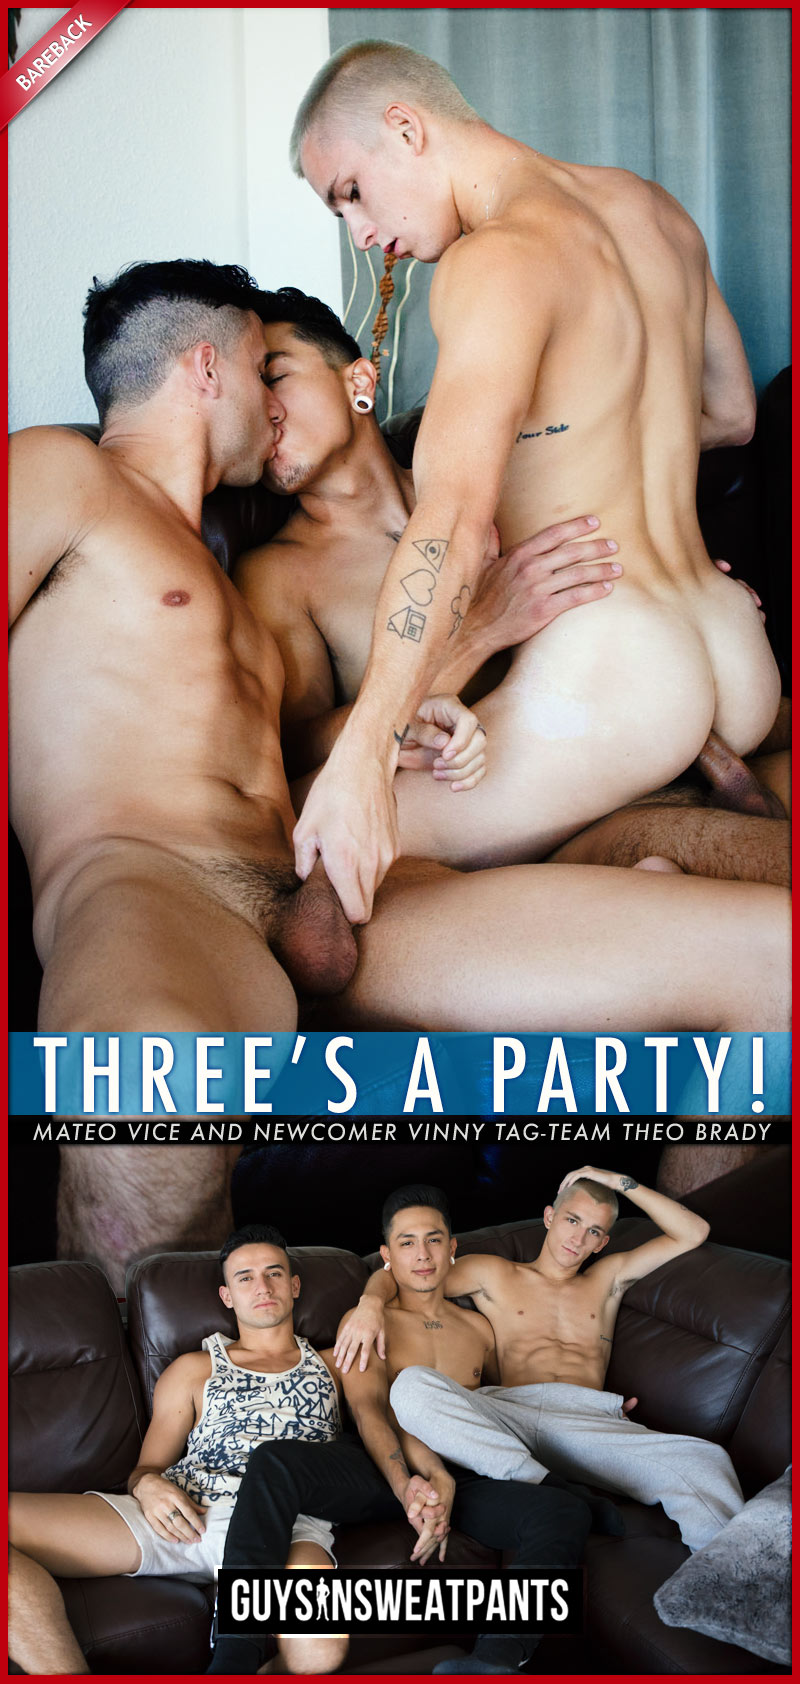 Three's A Party (Mateo Vice and Newcomer Vinny Tag-Team Theo Brady) at Guys In Sweatpants